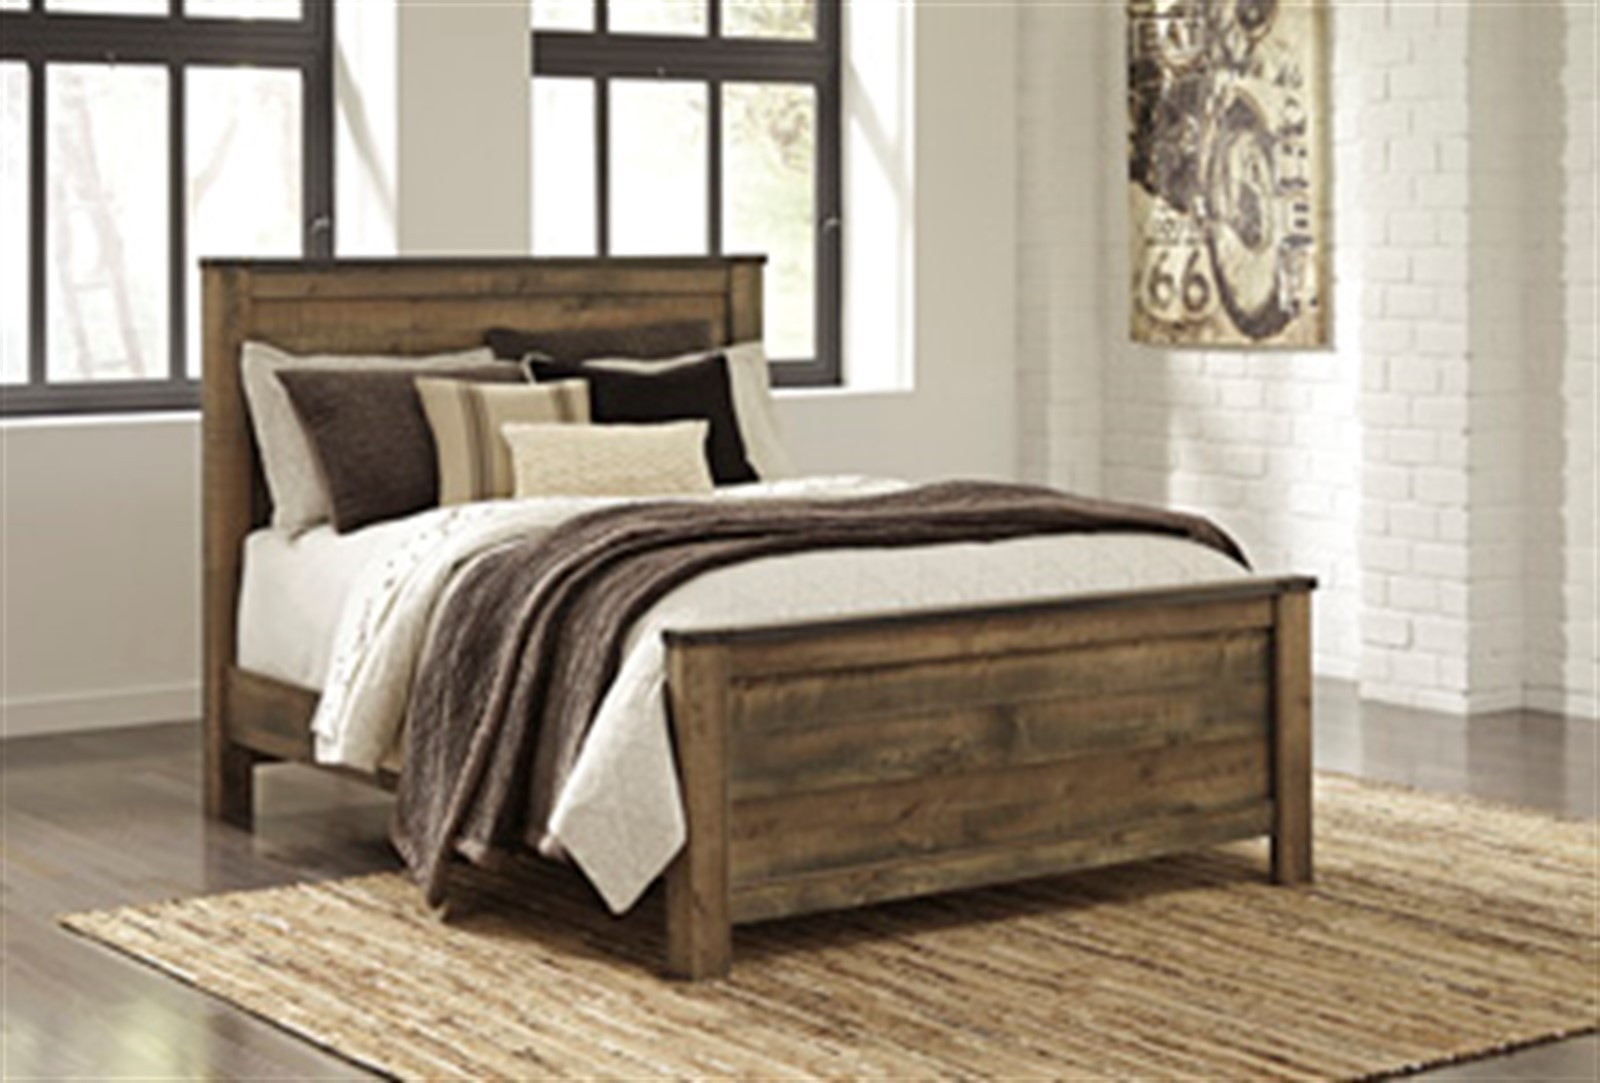 Twinell Queen Bed